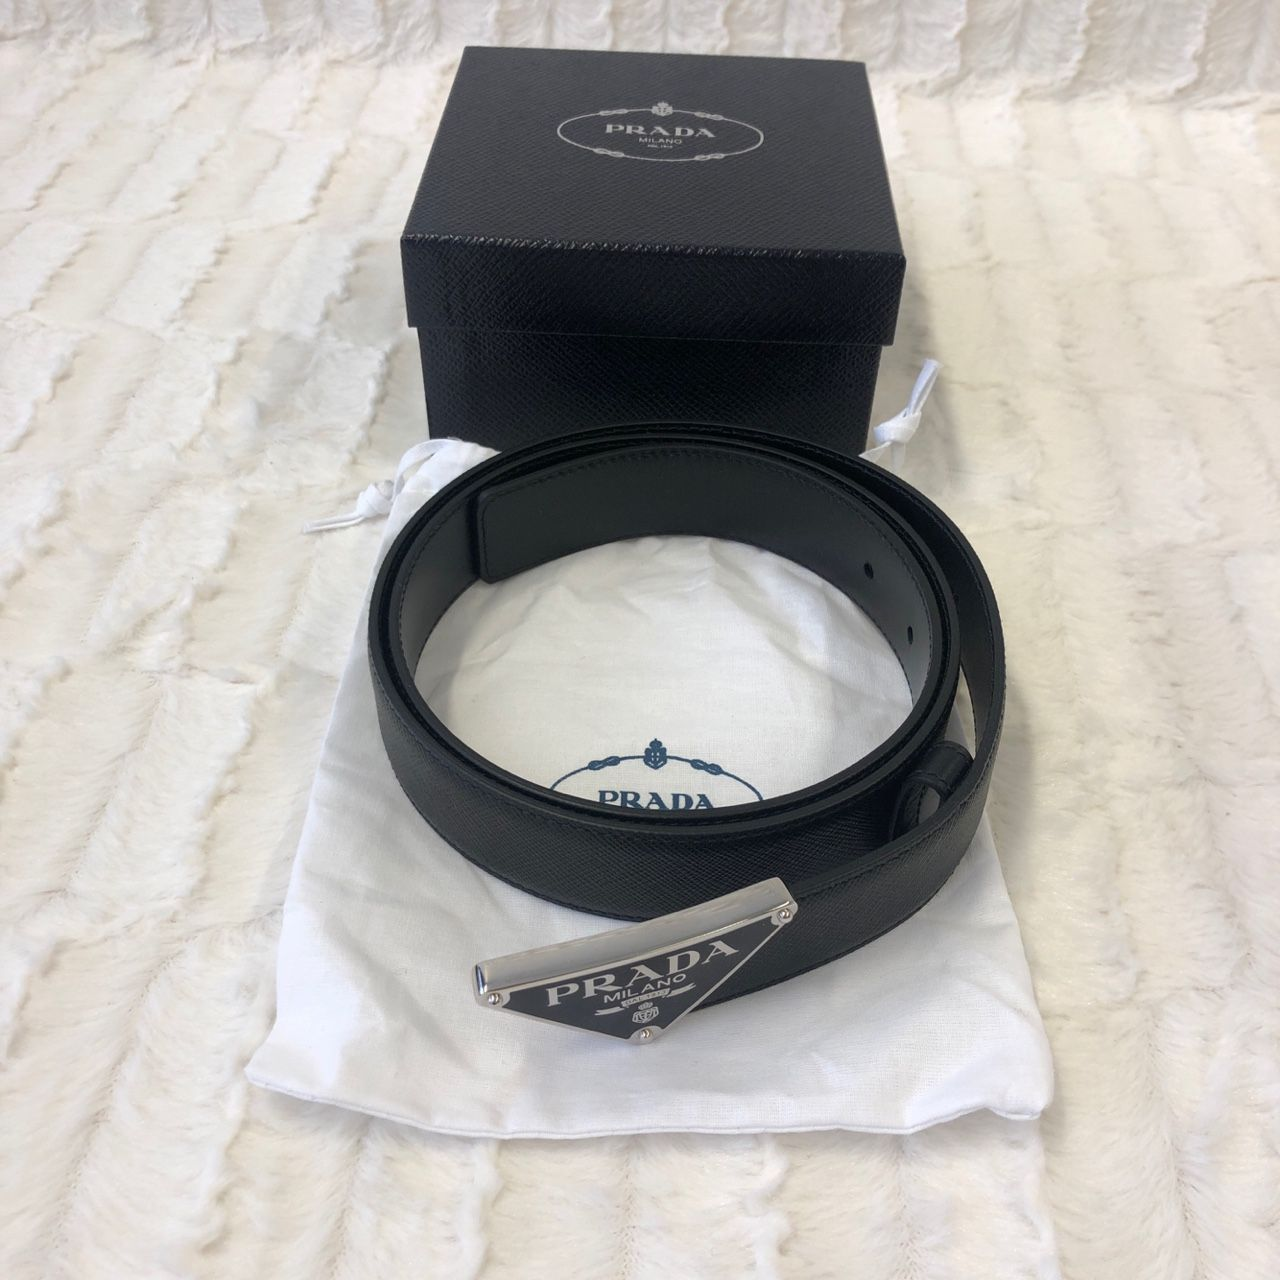 Prada Saffiano Leather Belt 2CM217_053_F0002